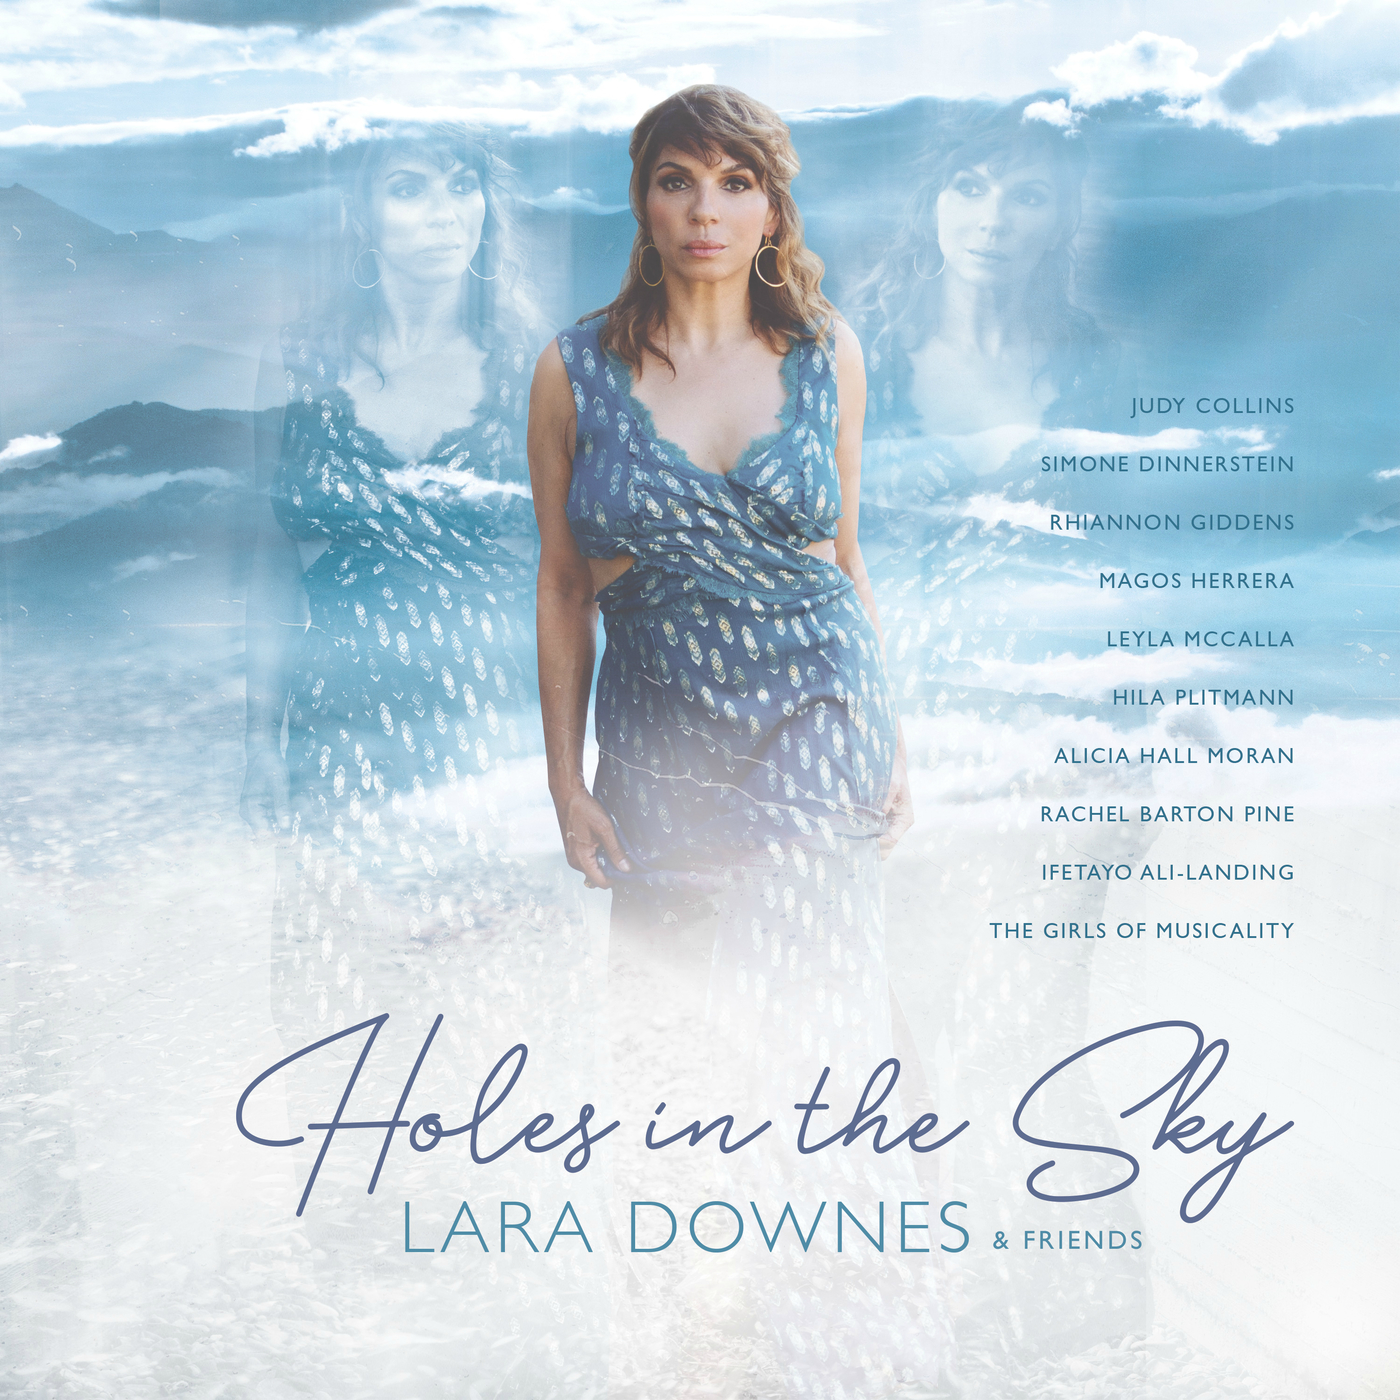 Holes in the Sky - Lara Downes